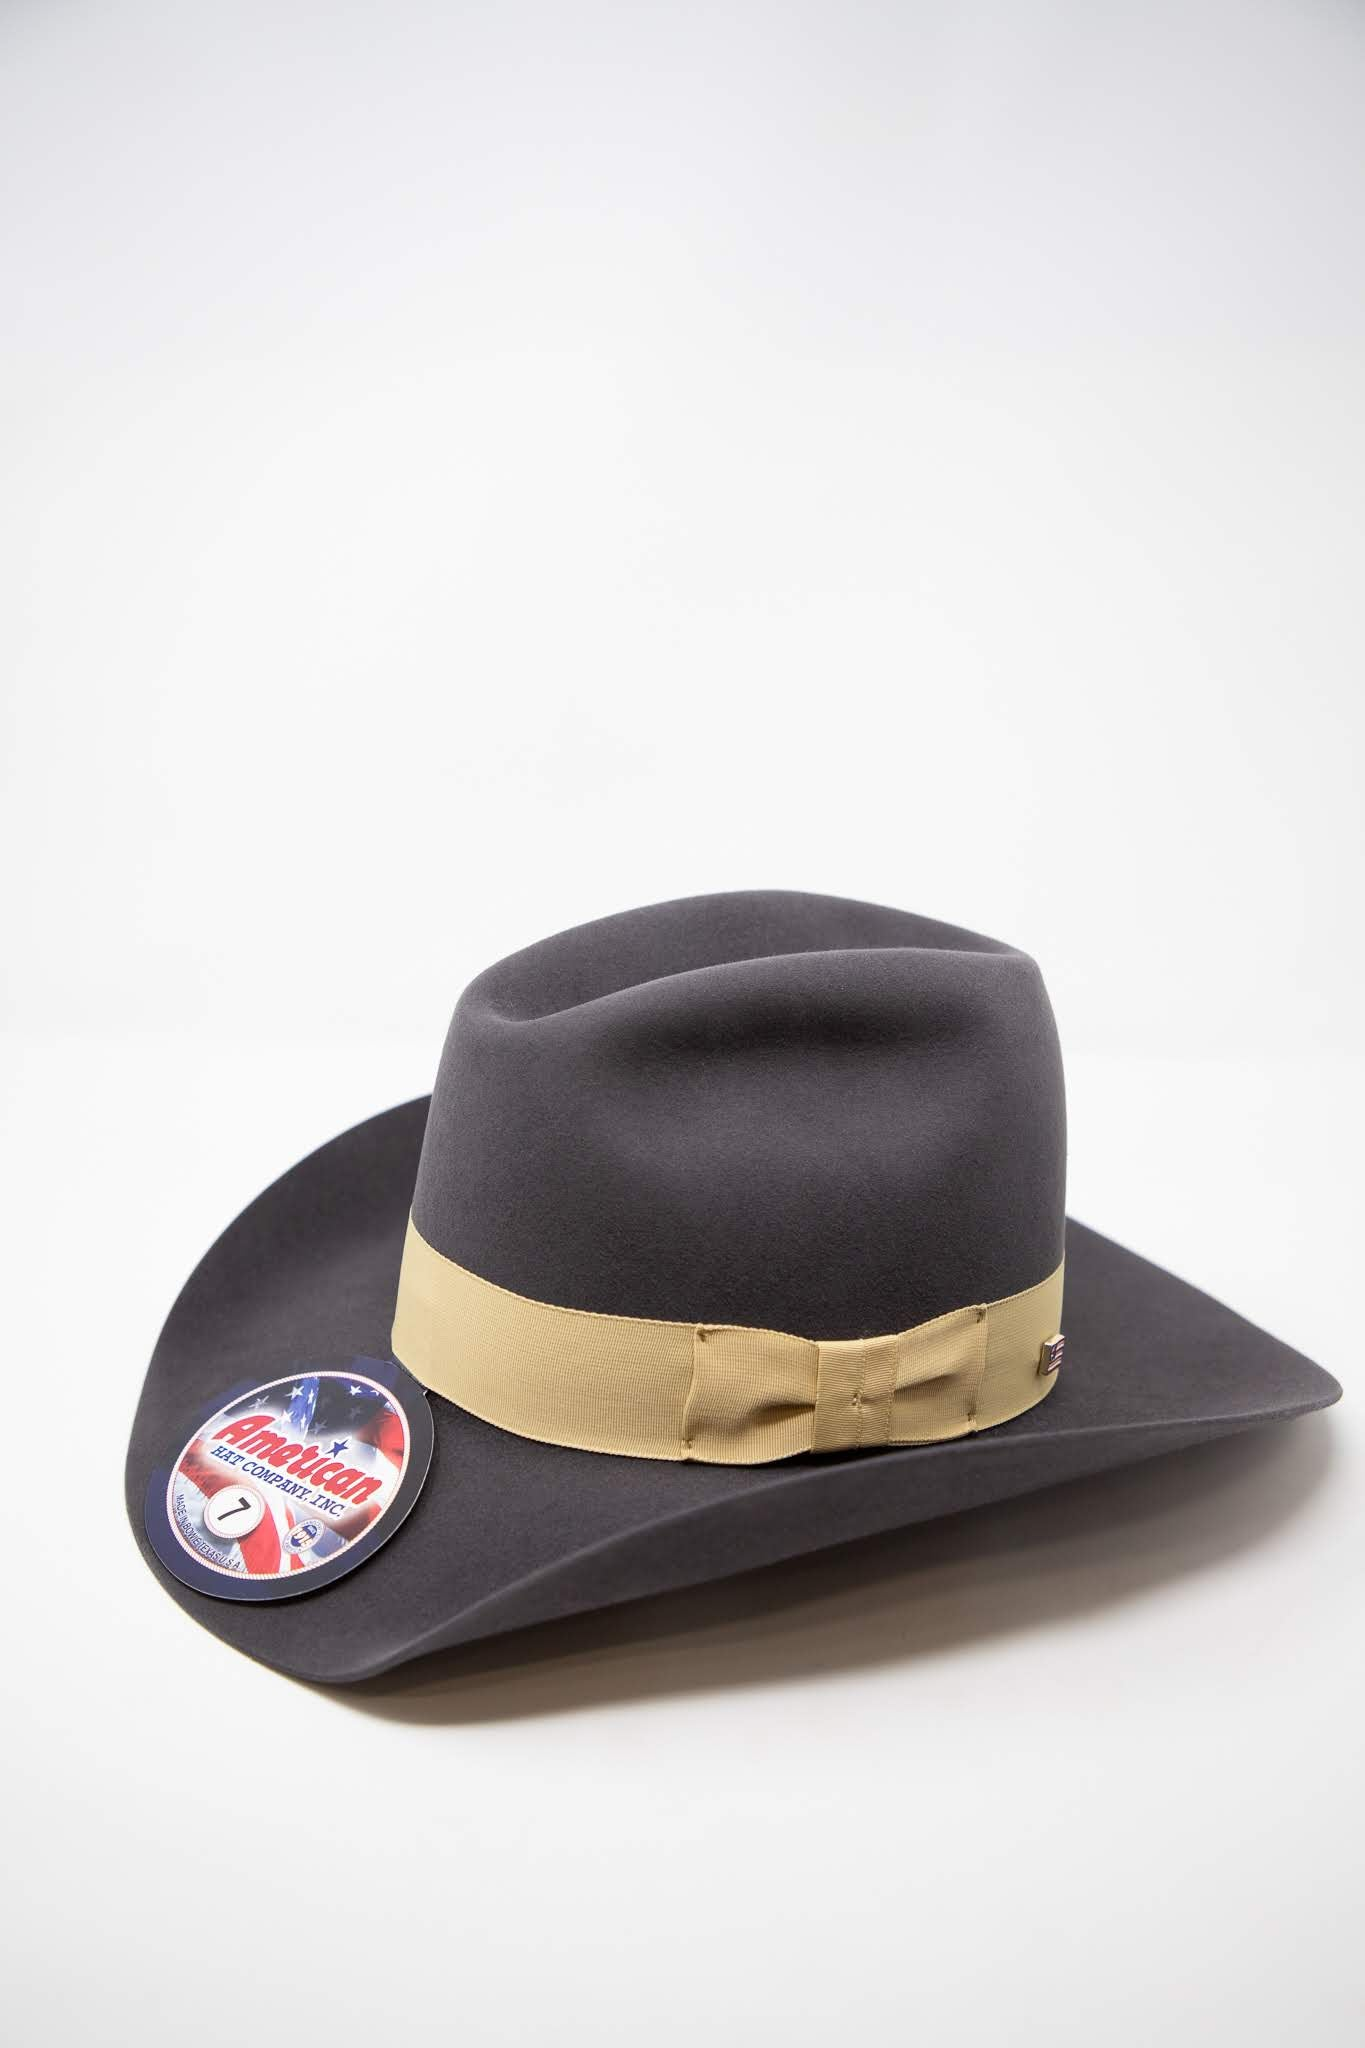 American Hat Co. 7x Steel Buckskin Ribbon Felt Hat